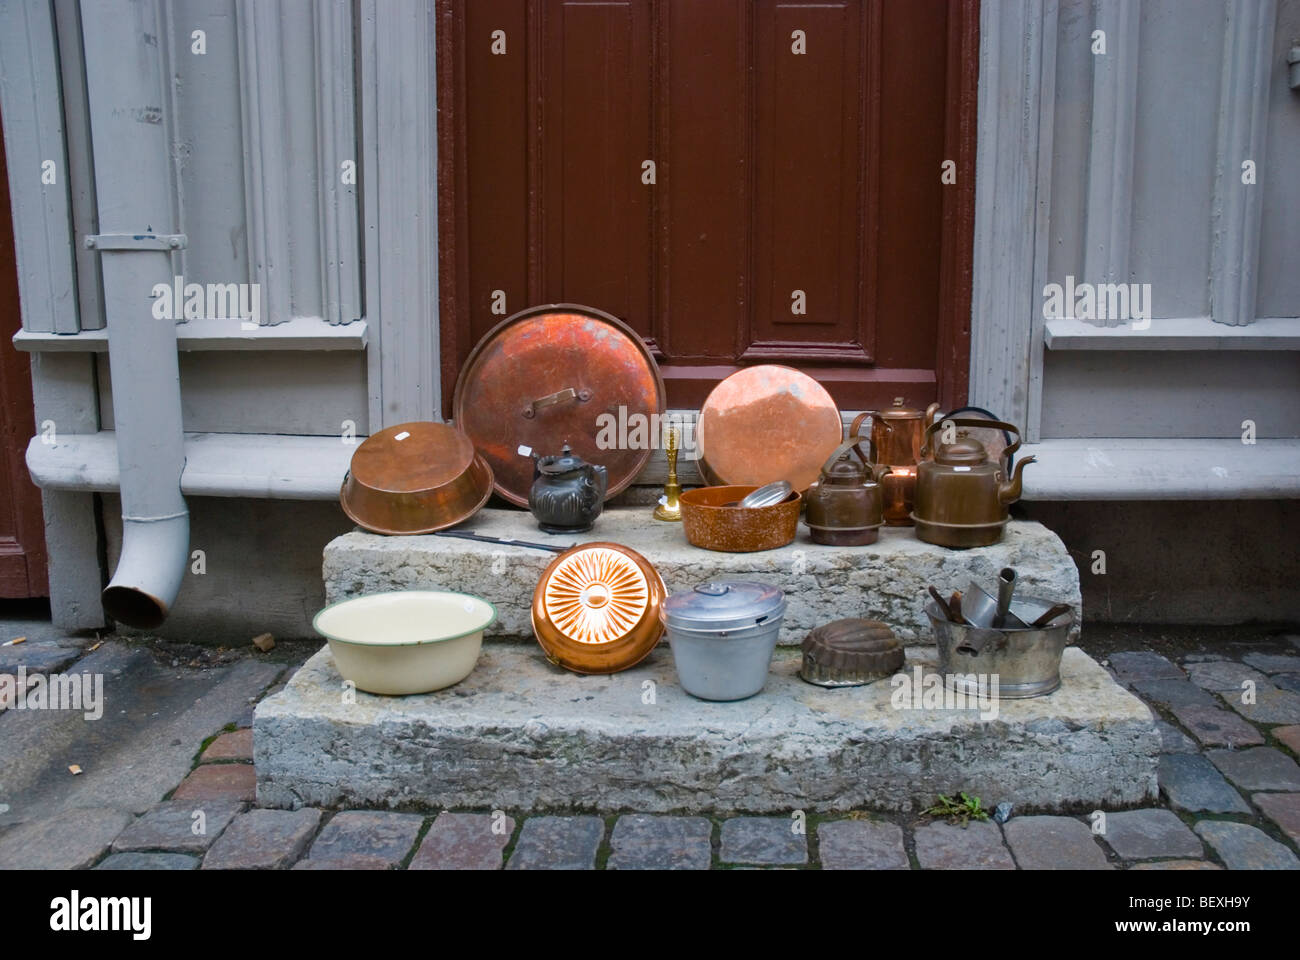 Copperware and other pots and pans Haga district Gothenburg Sweden Europe - Stock Image